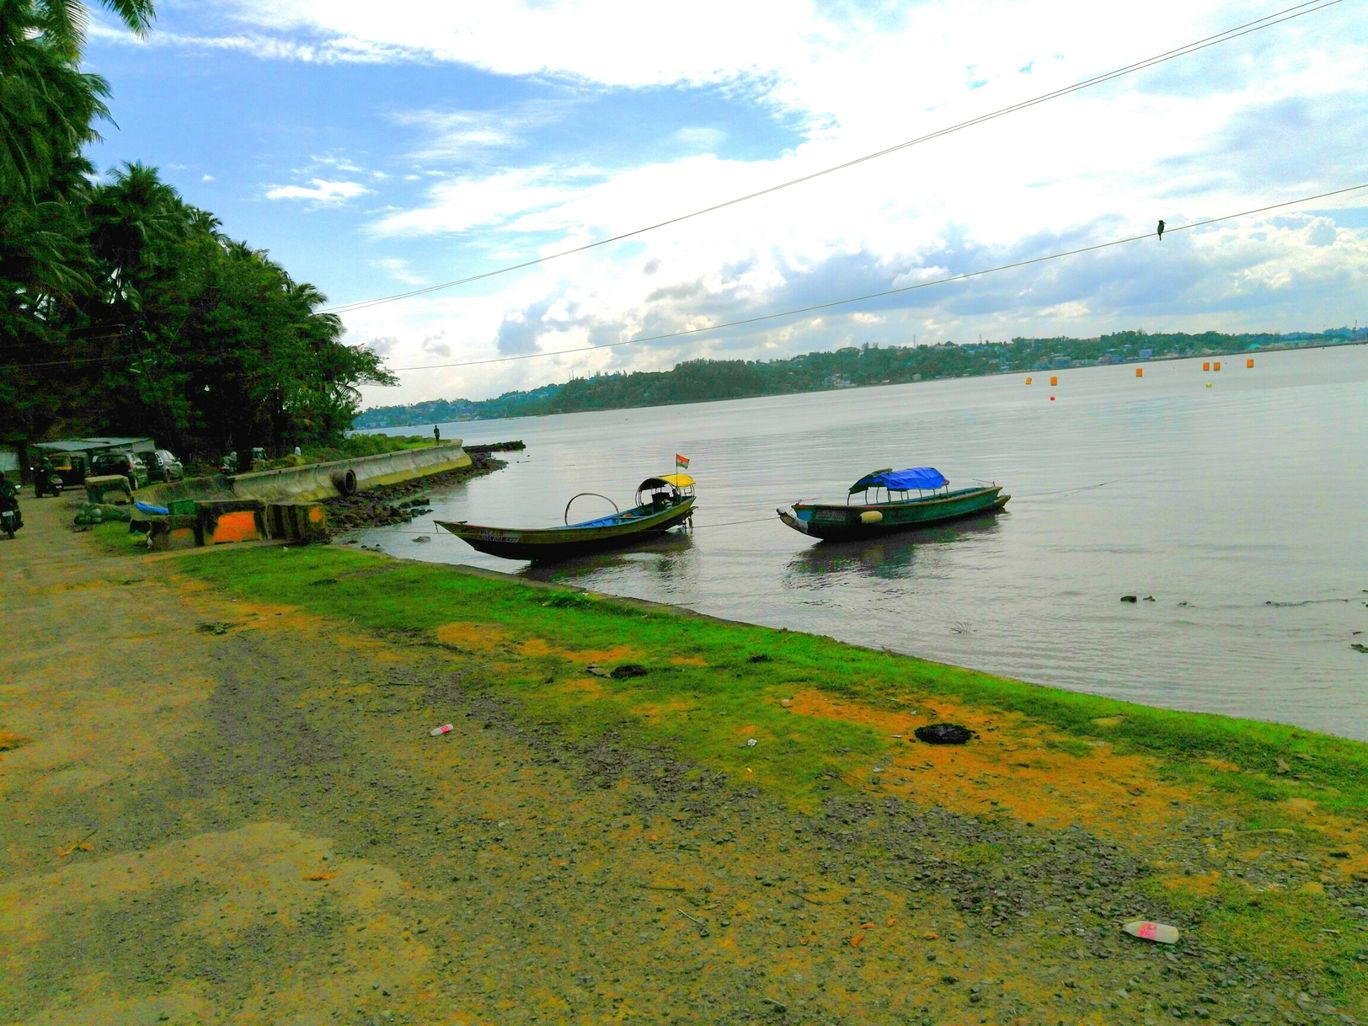 Photo of Portblair- the city of beaches By Sandp Duhan